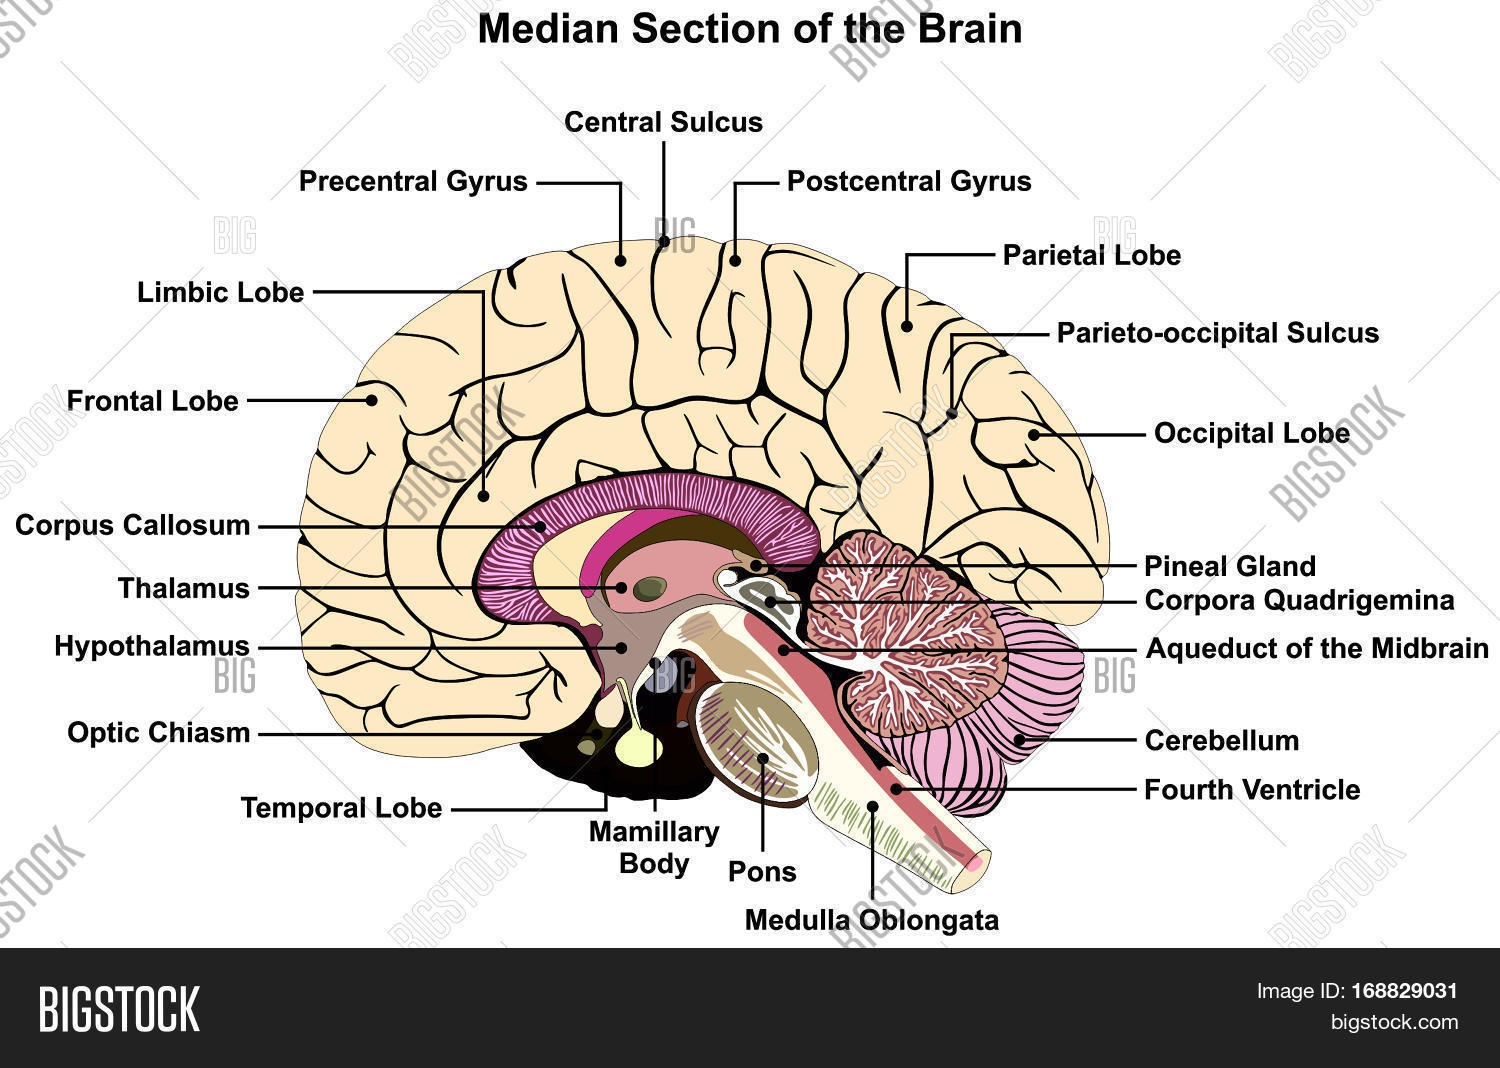 Median Section of Human Brain Anatomical structure diagram ...